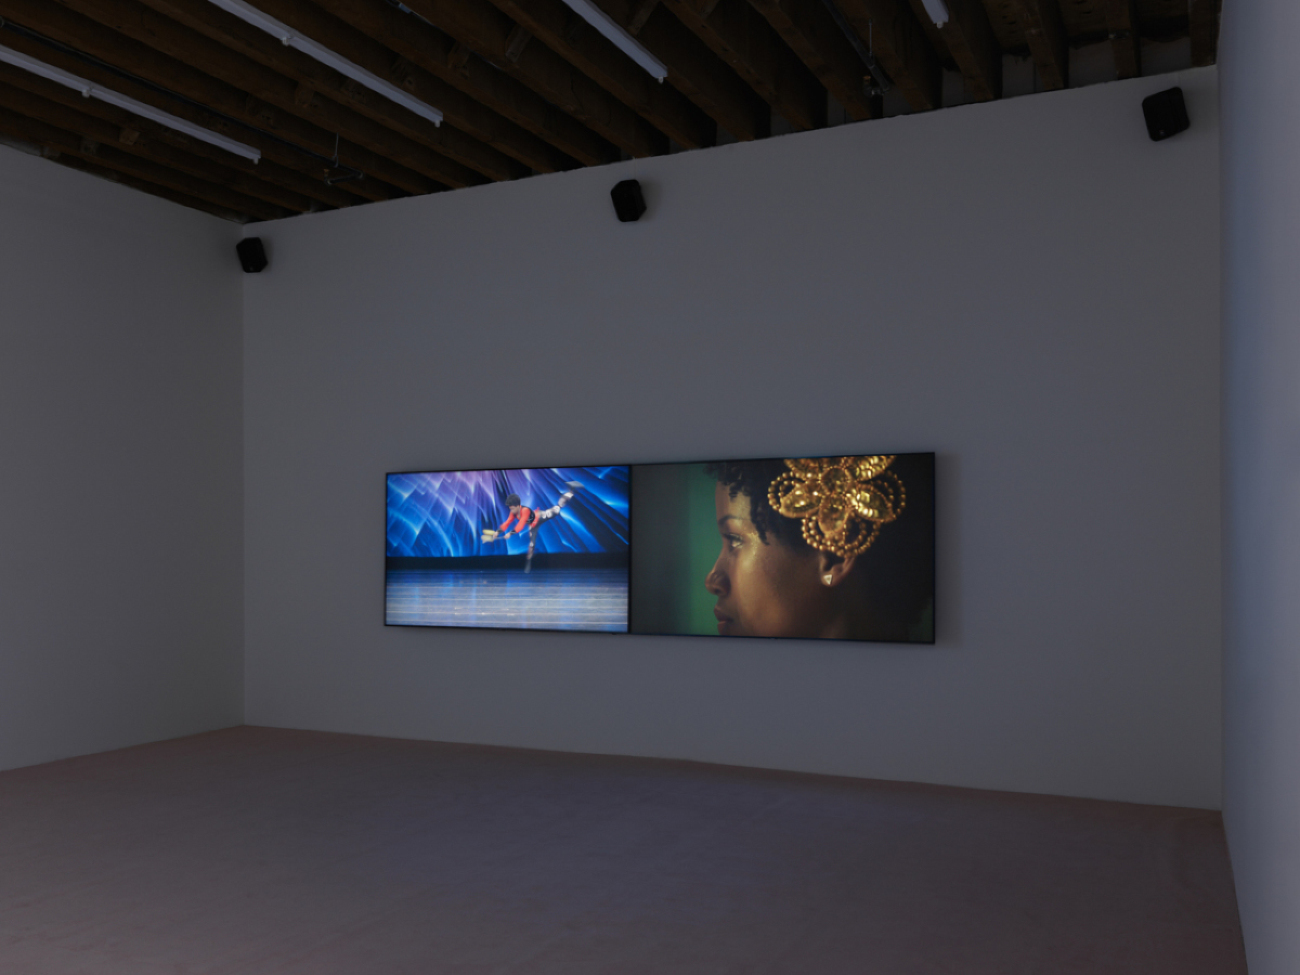 HE XIANGYU Terminal 3, 2016-2019 2-channel HD Video, color, 5.1 surround sound, mixed media 35'35'' minutes